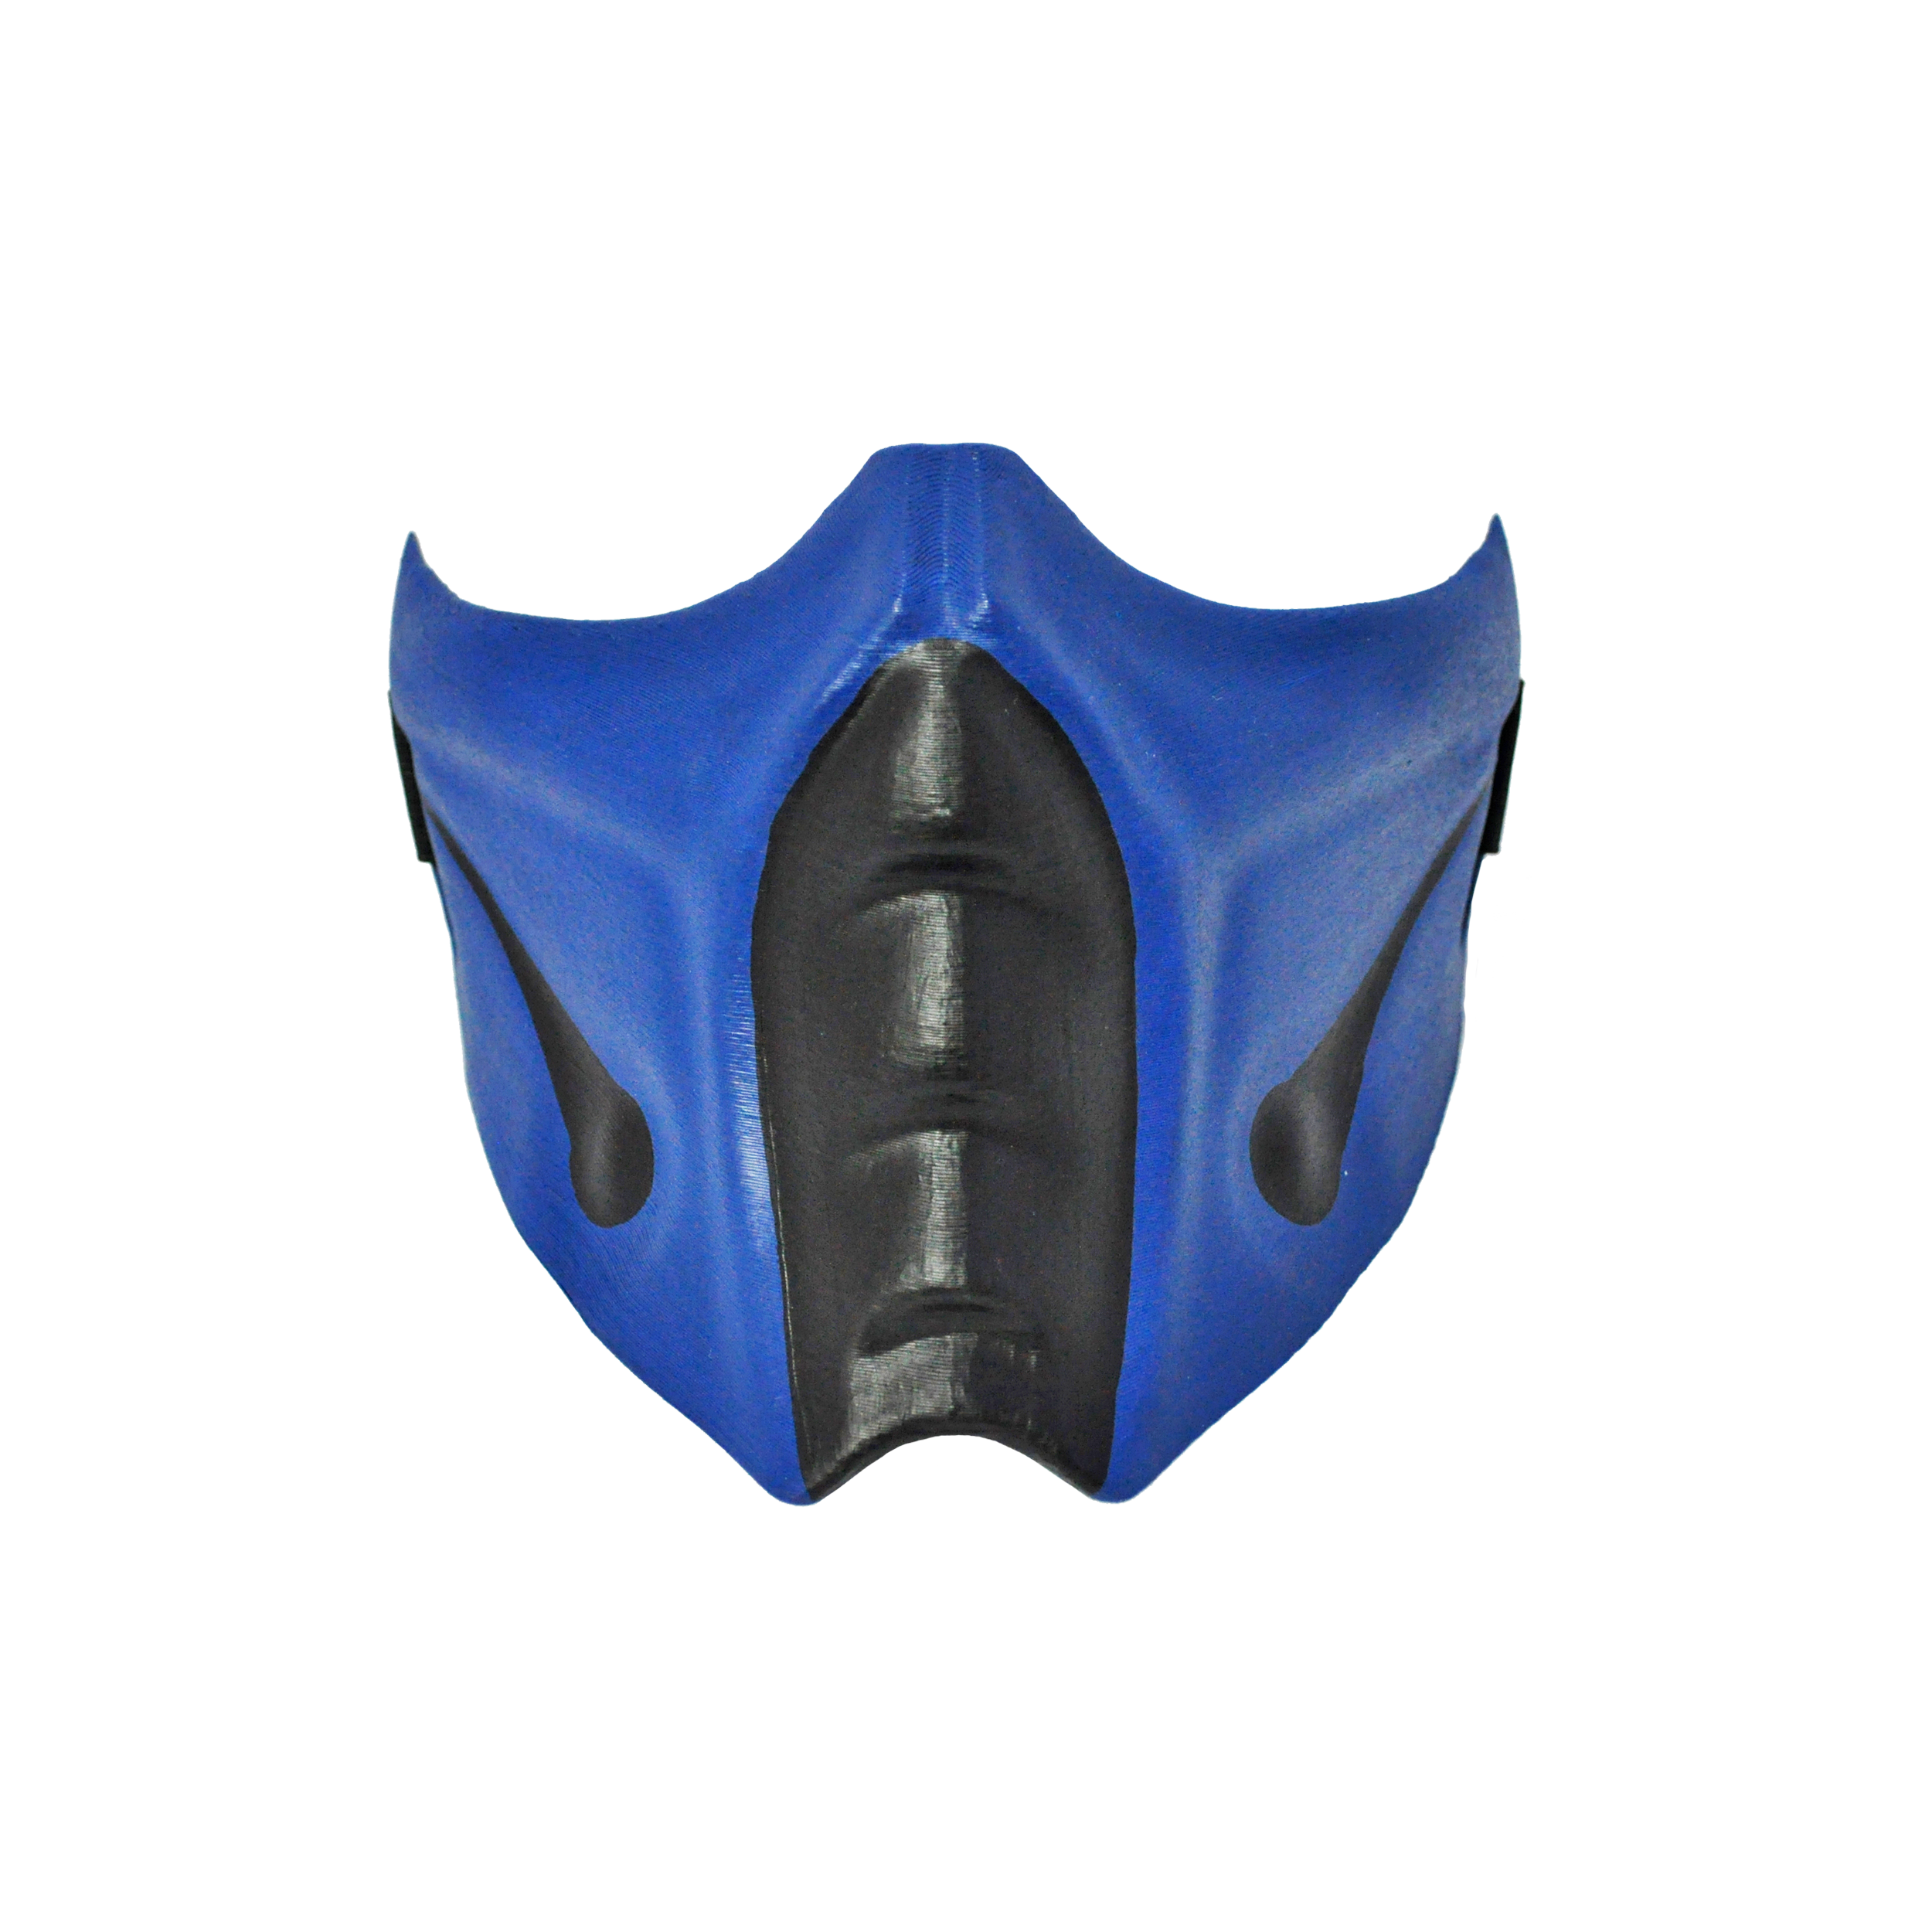 Sub Zero Mask From Mk Cosplay Or Airsoft Mask Costumes From